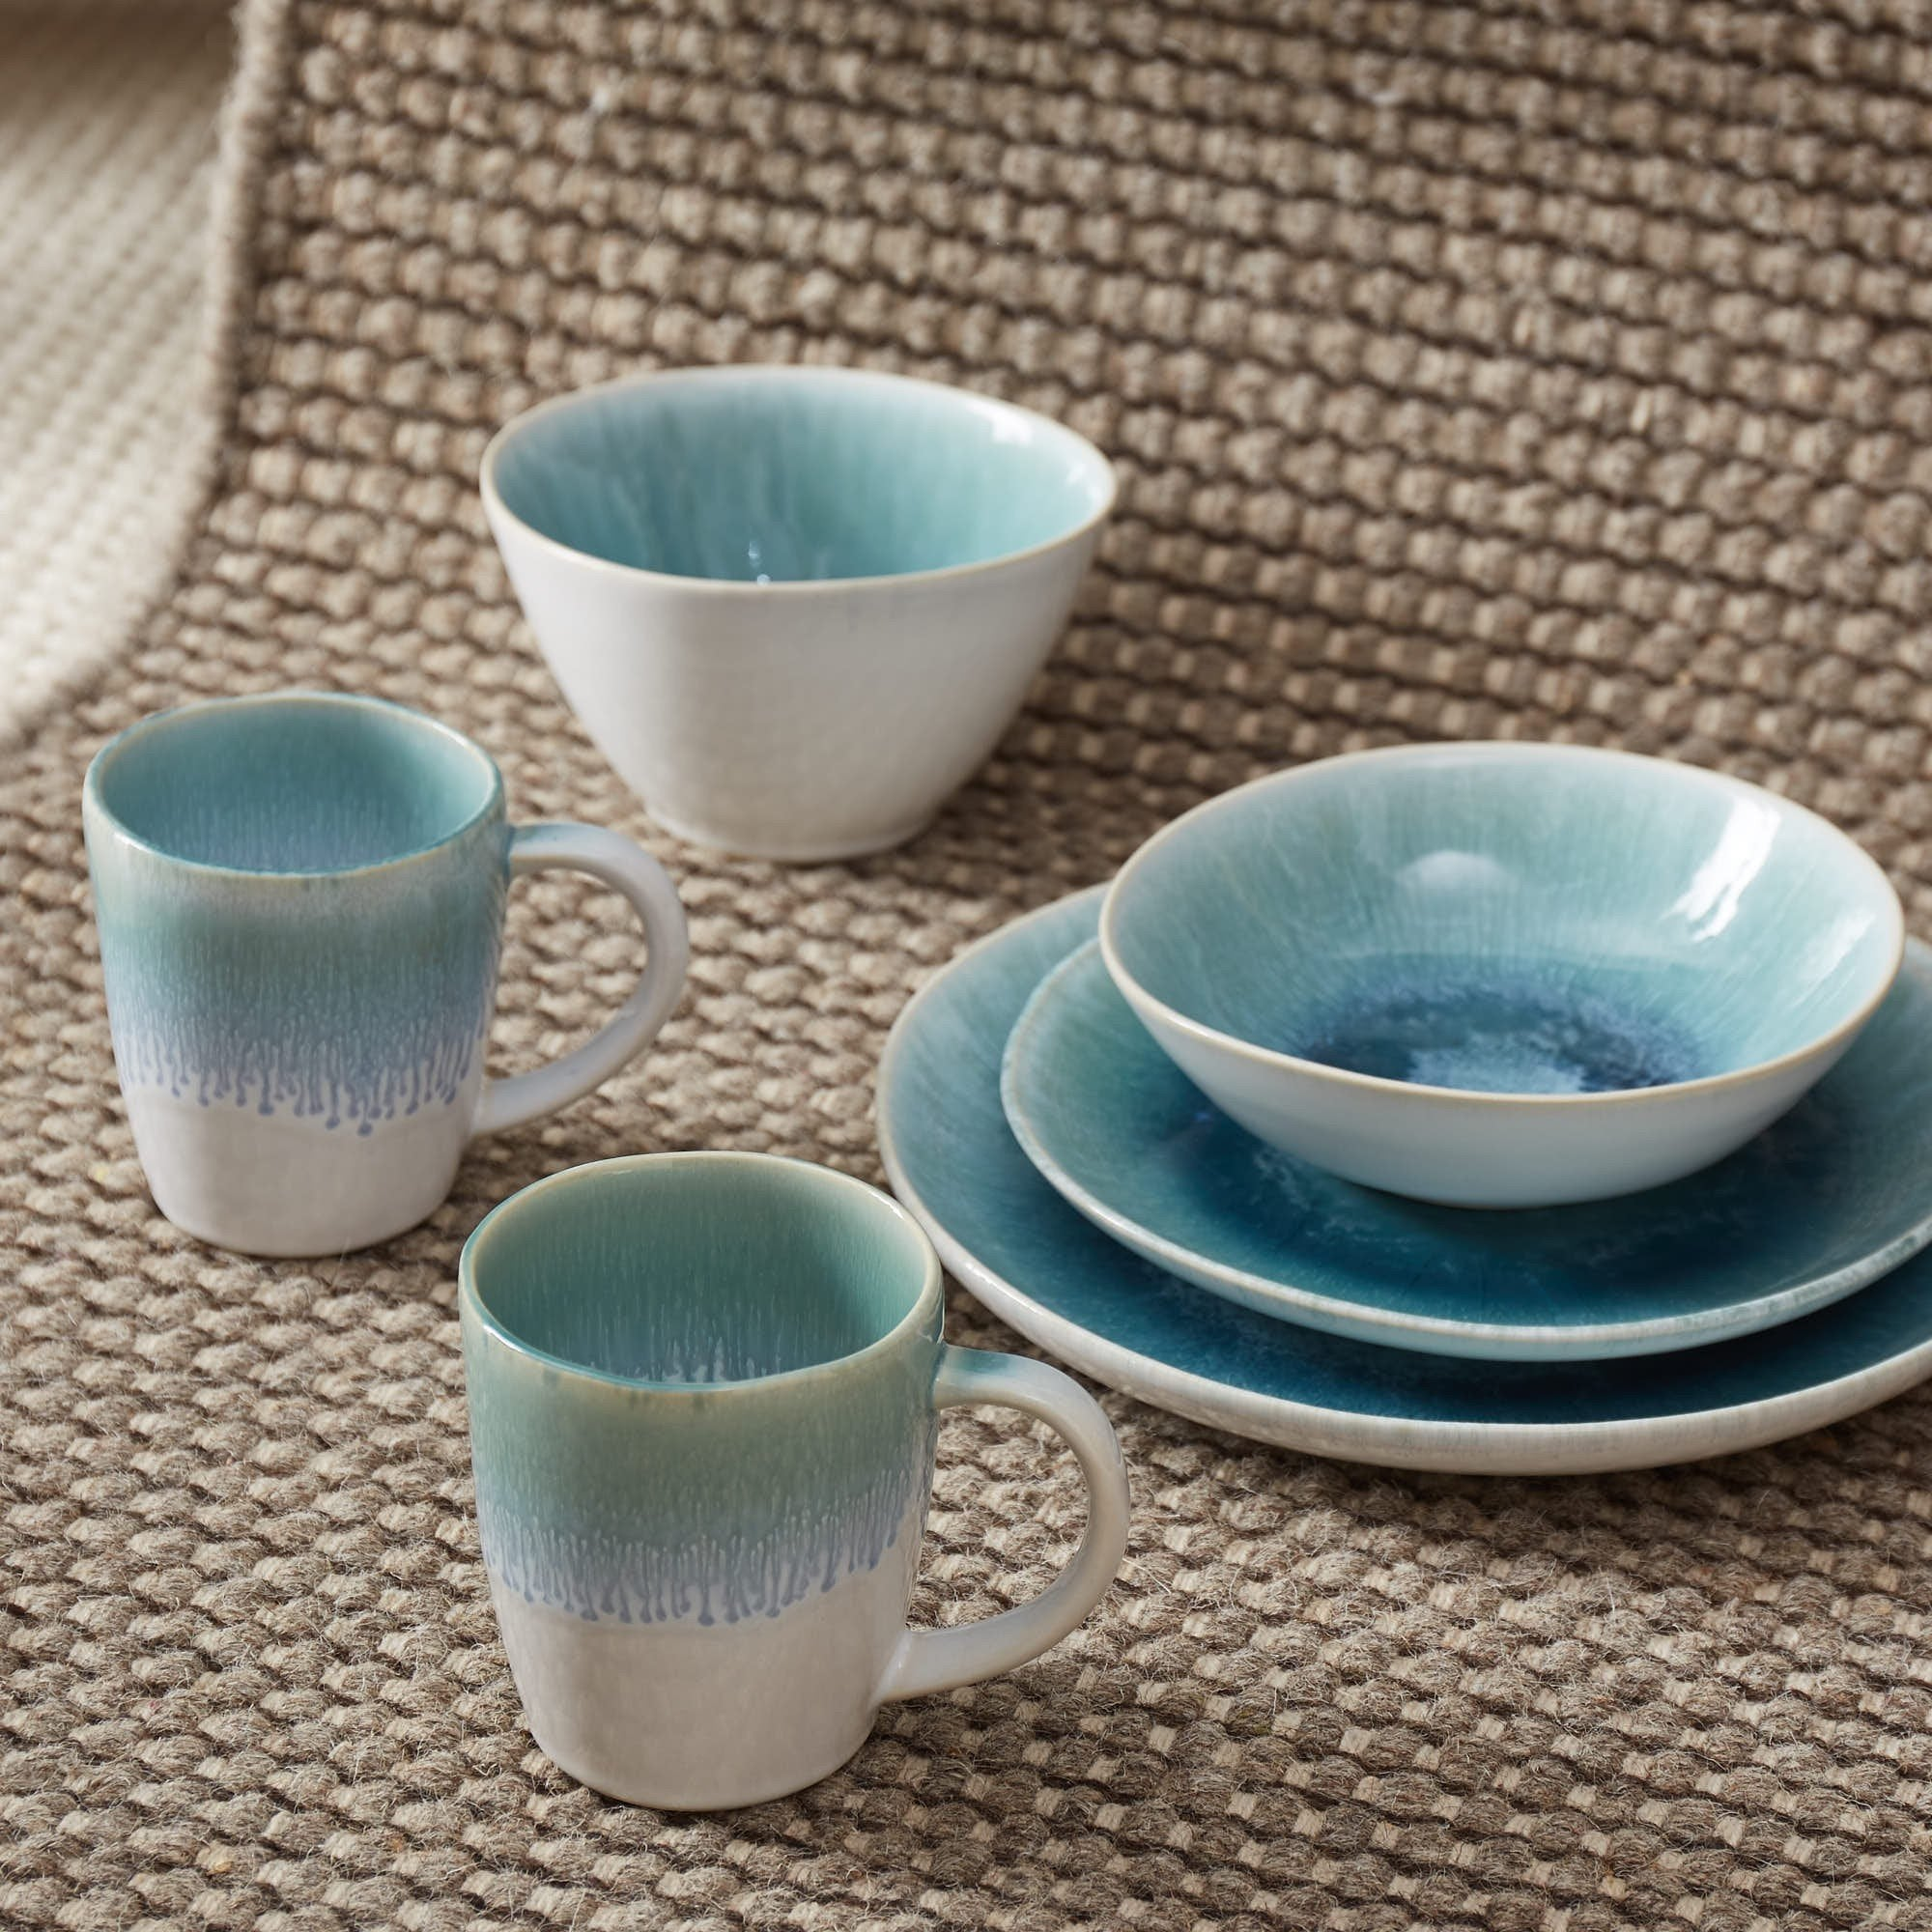 Caima Dinner Plate Set in turquoise & blue | Home & Living inspiration | URBANARA